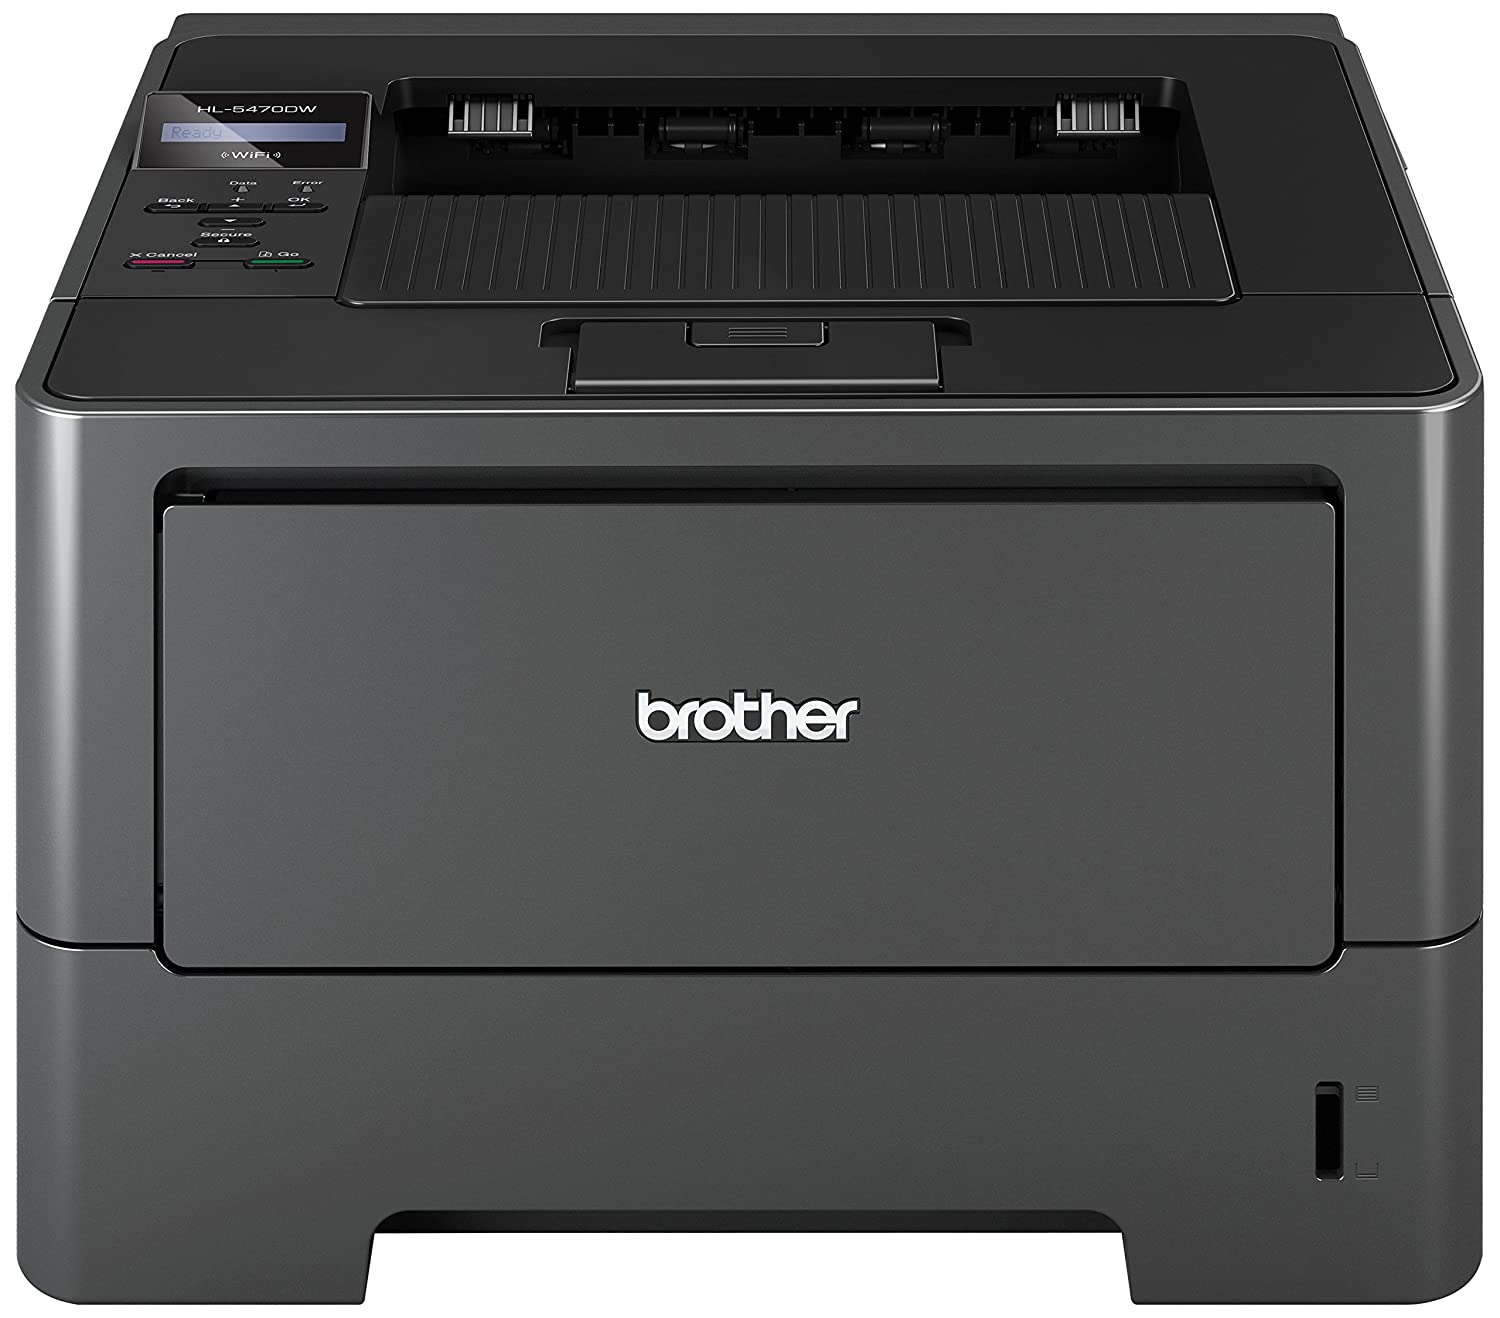 Brother Hl 22700w Driver Download: BROTHER HL-5470DW WINDOWS 8 DRIVERS DOWNLOAD